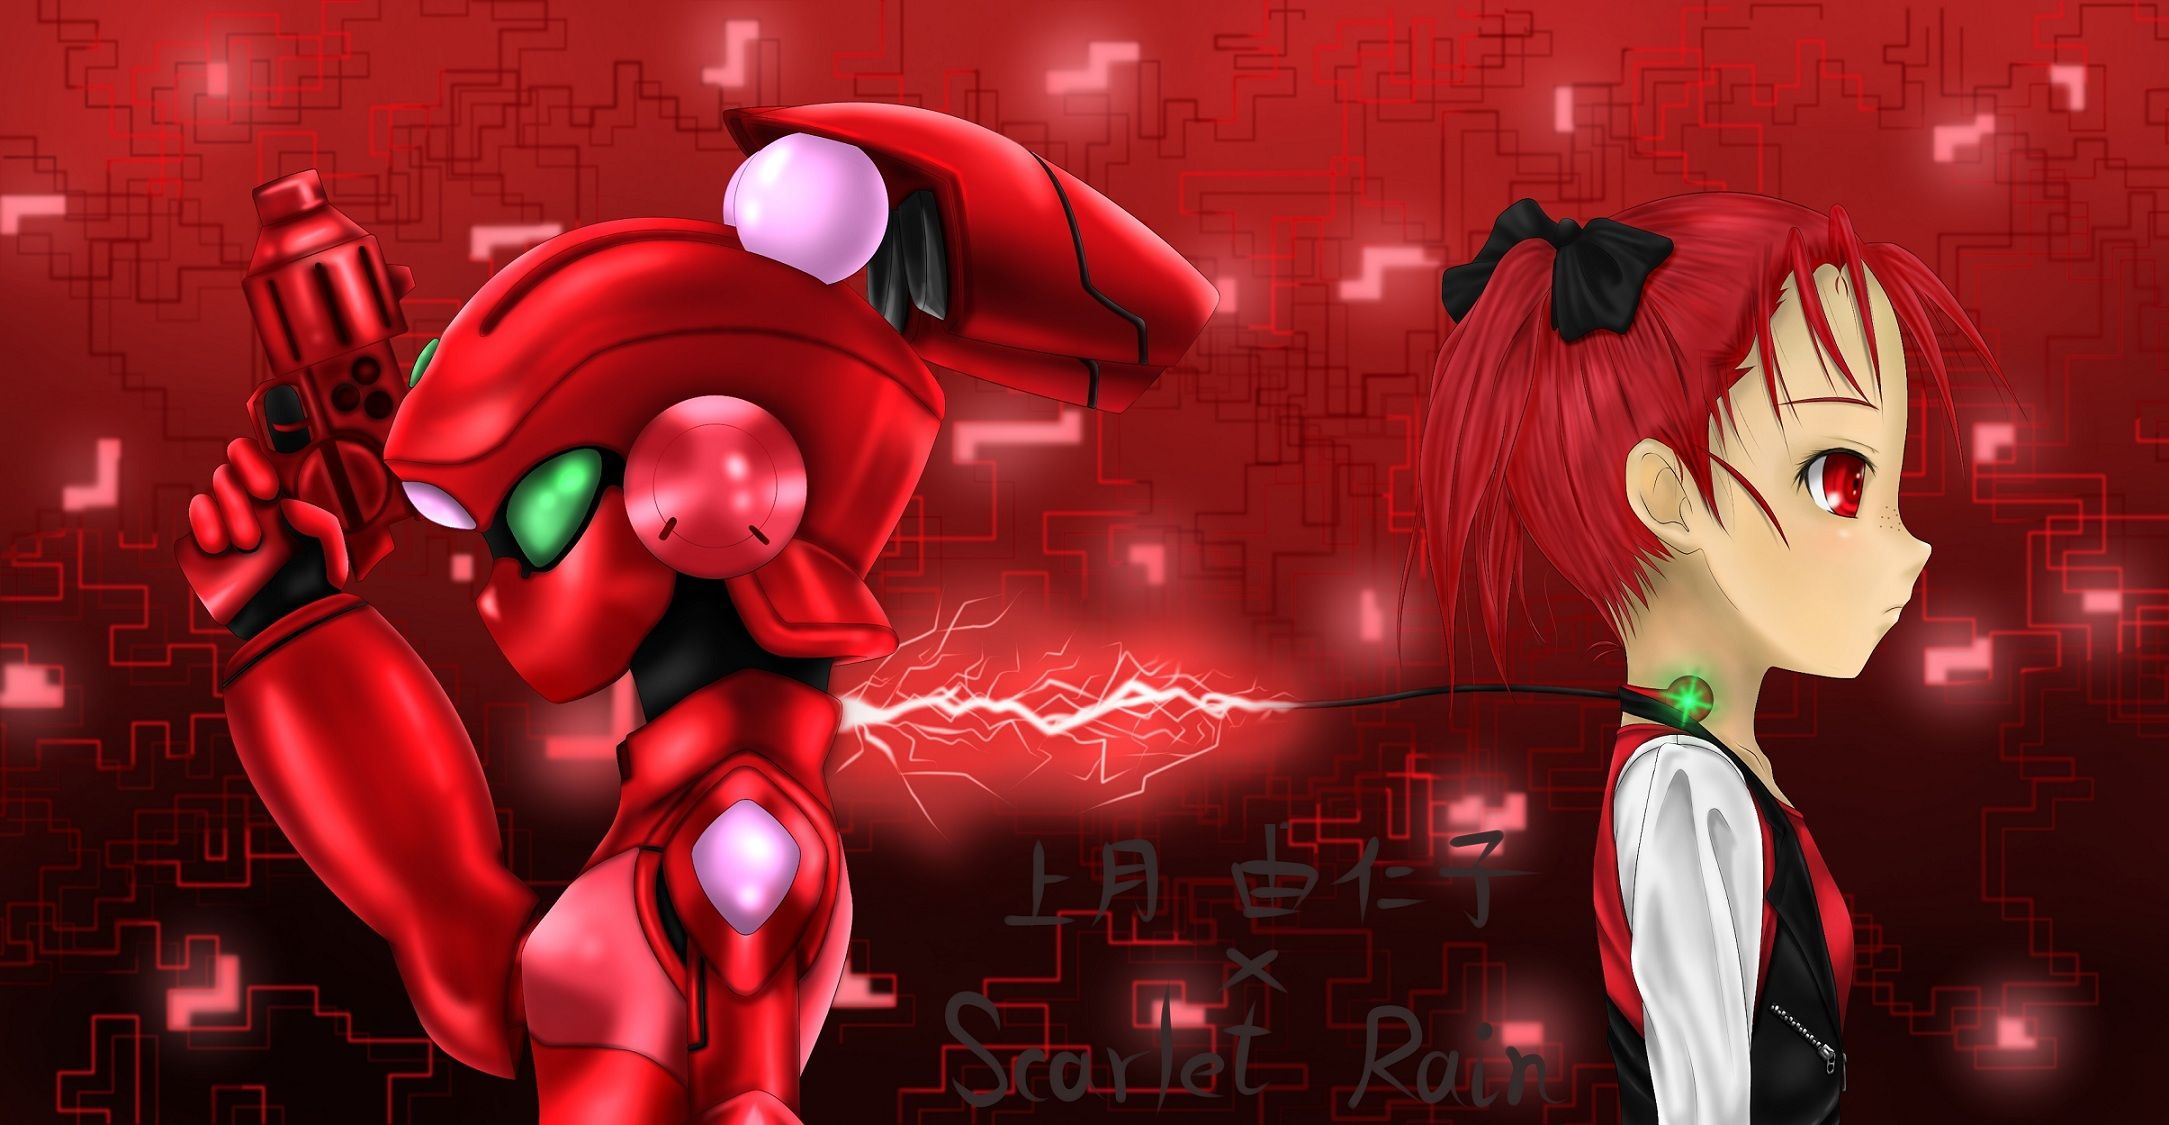 Anime Accel World Yuniko Kouzuki Scarlet Rain Wallpaper